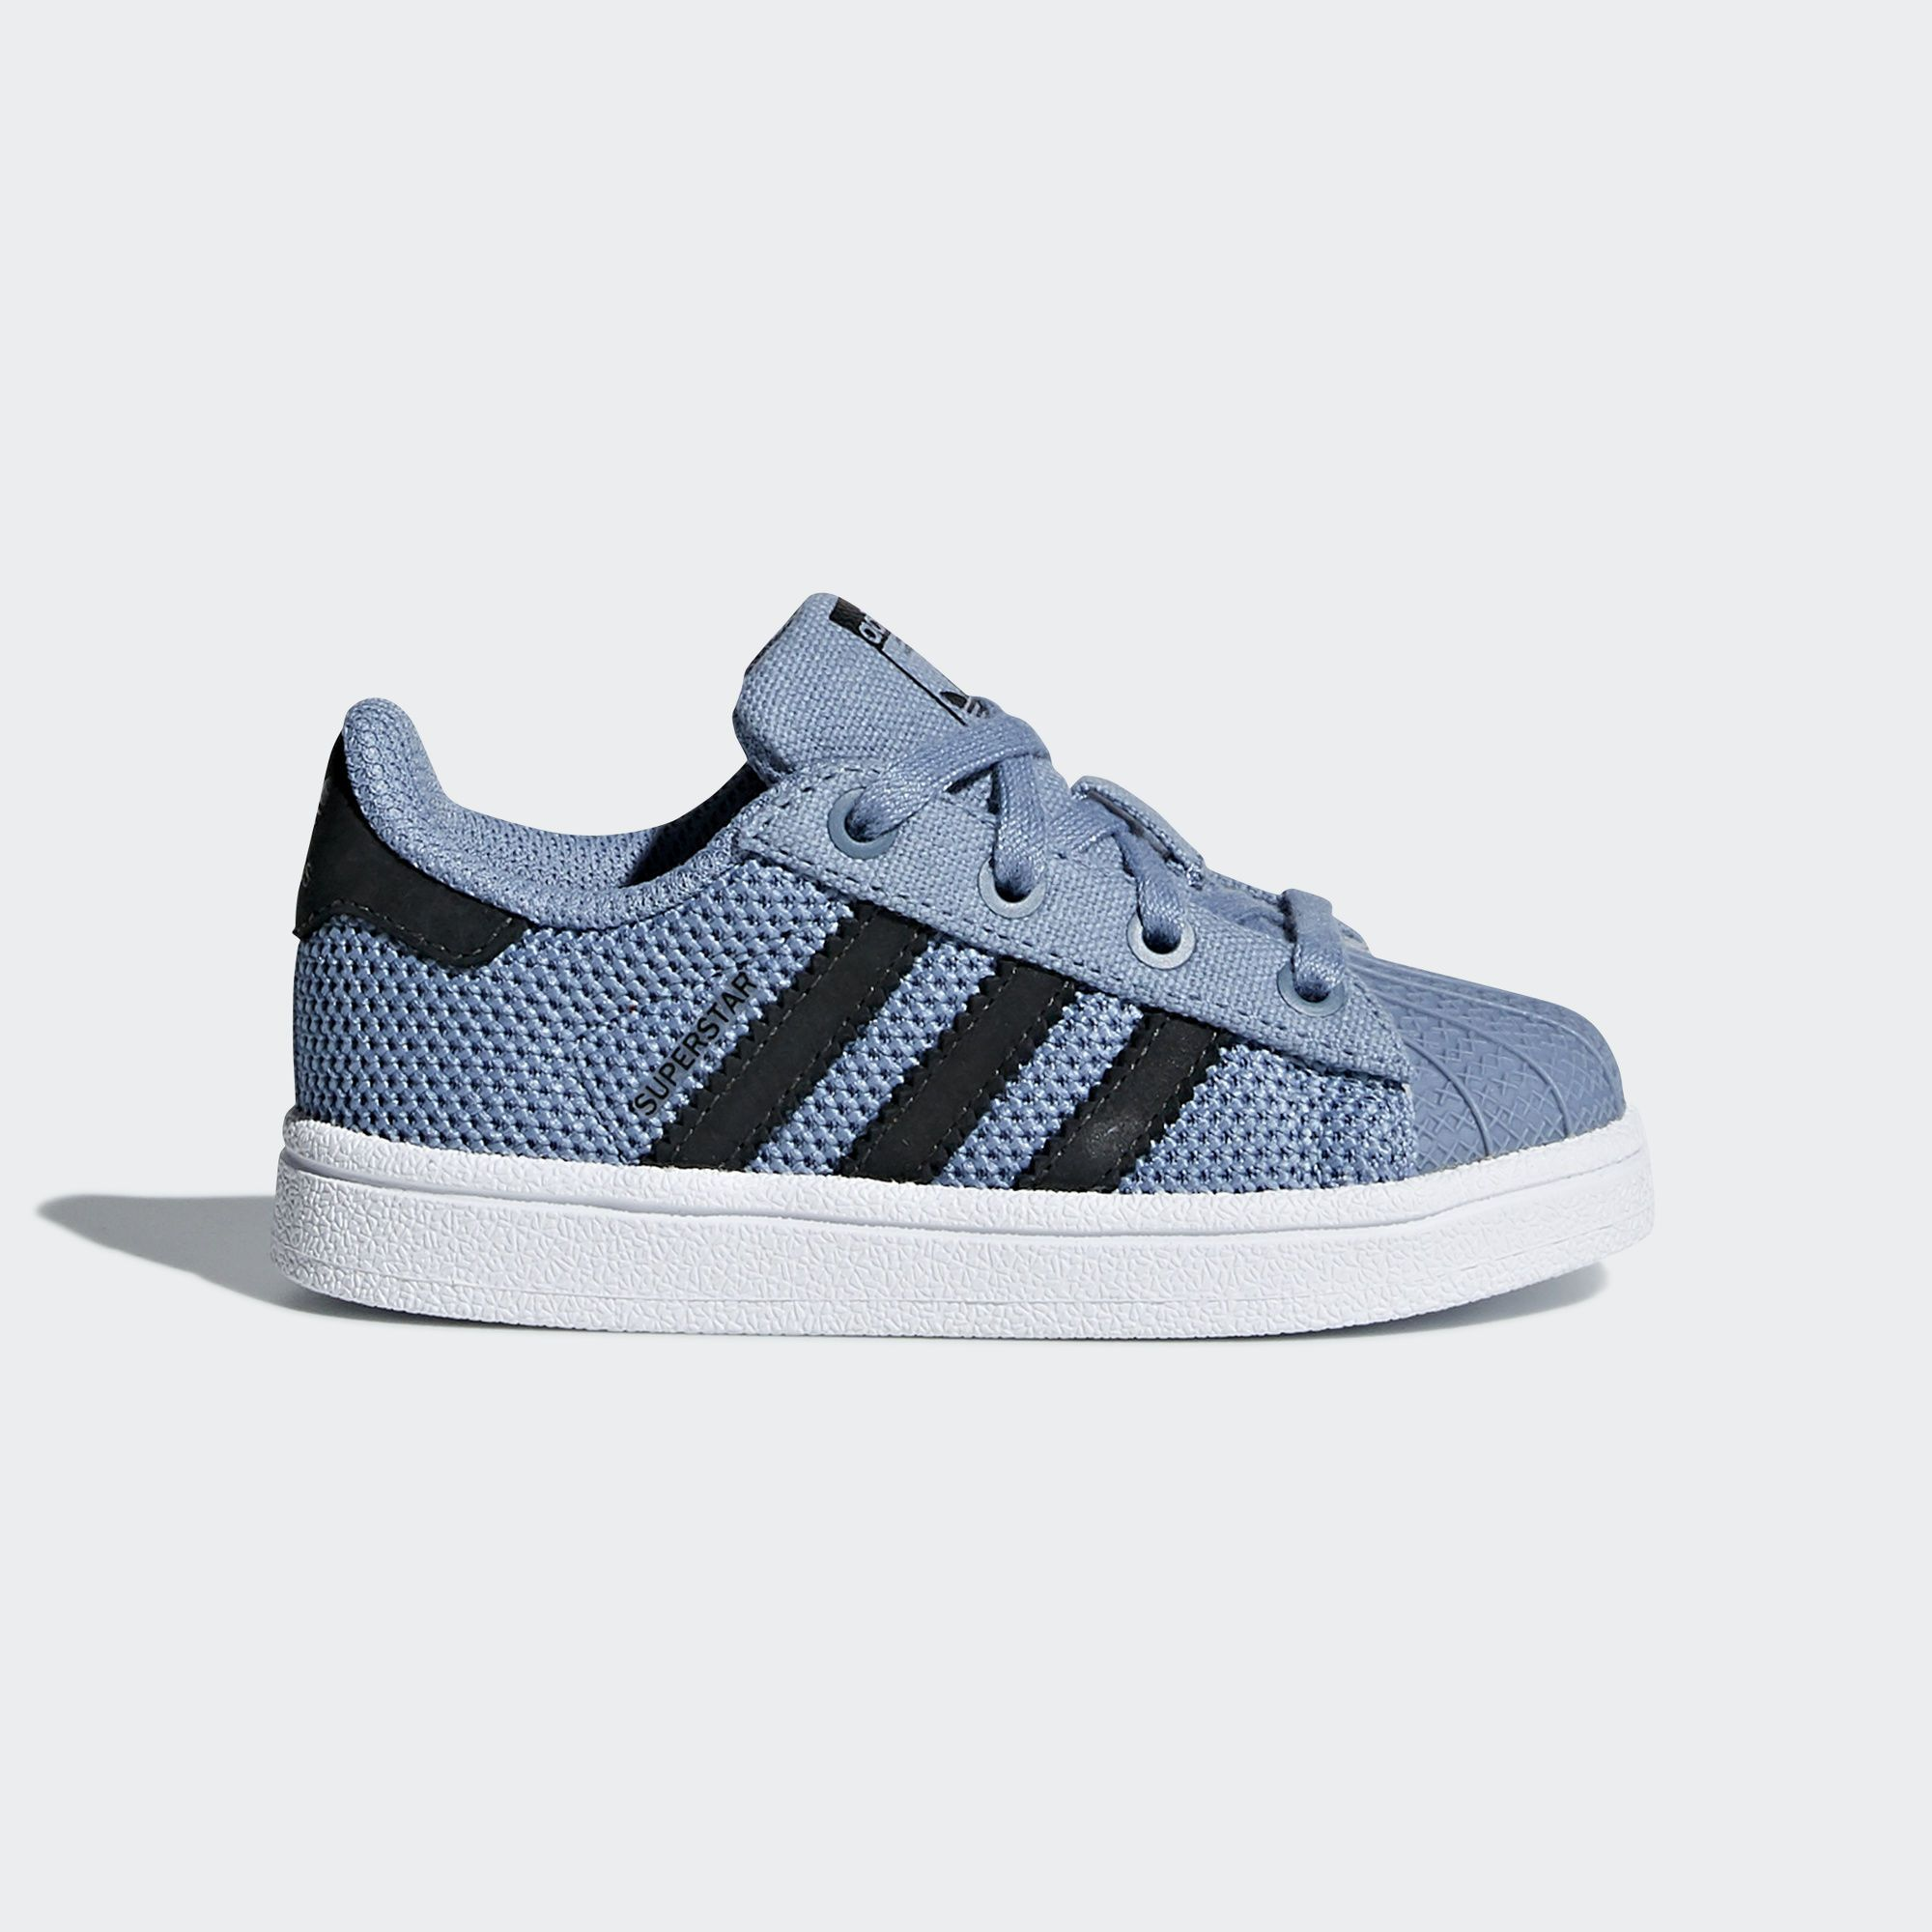 Shop for Superstar Shoes - Blue at adidas.co.uk! See all the ...